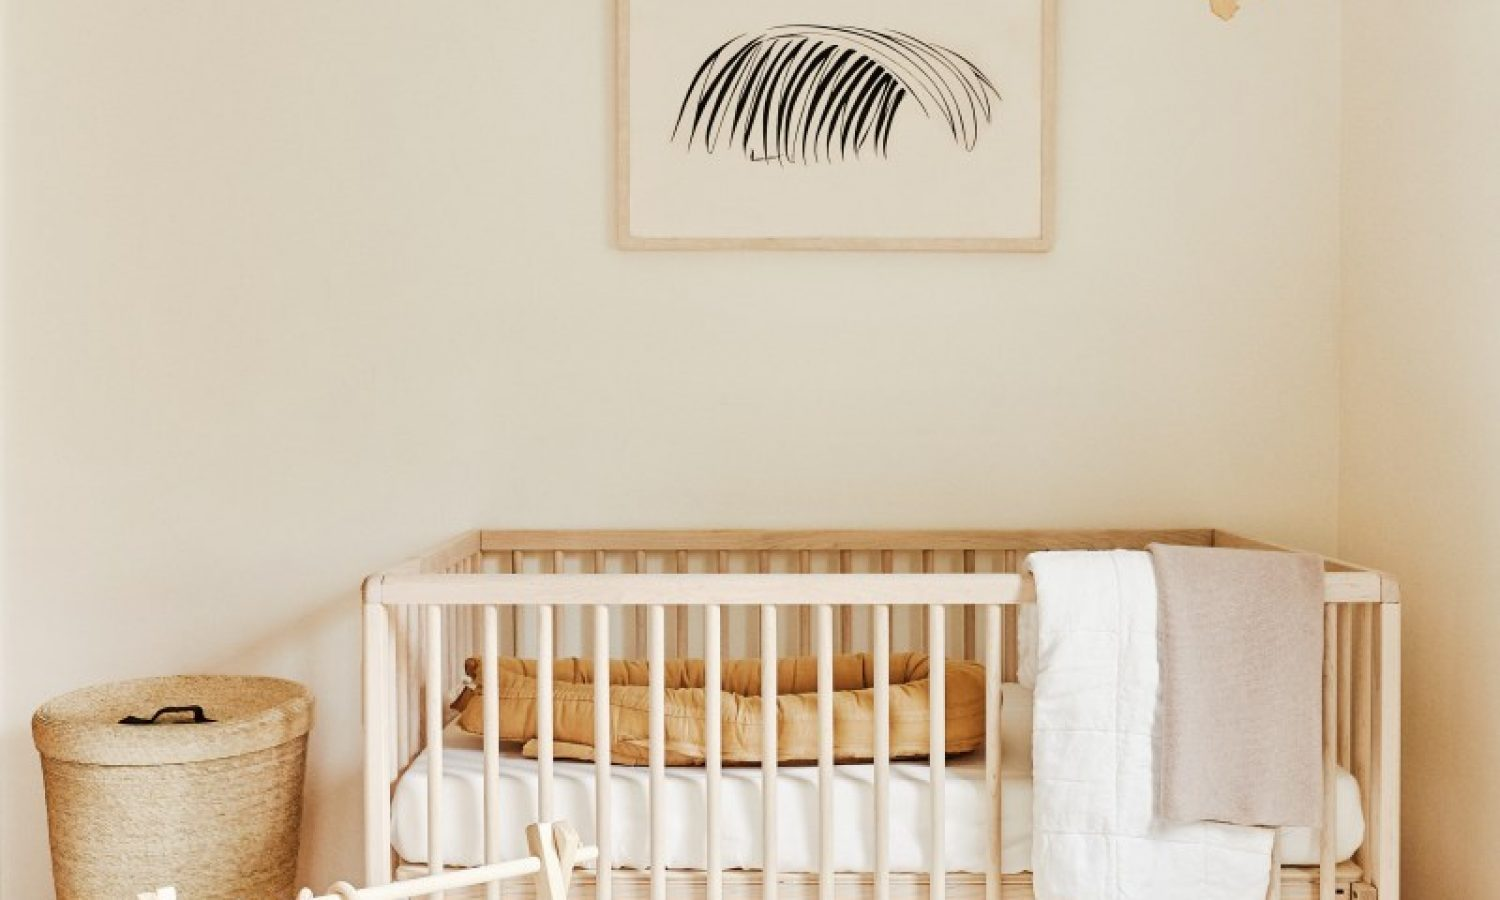 baby nursery with crib, mobile, and fuzzy rug